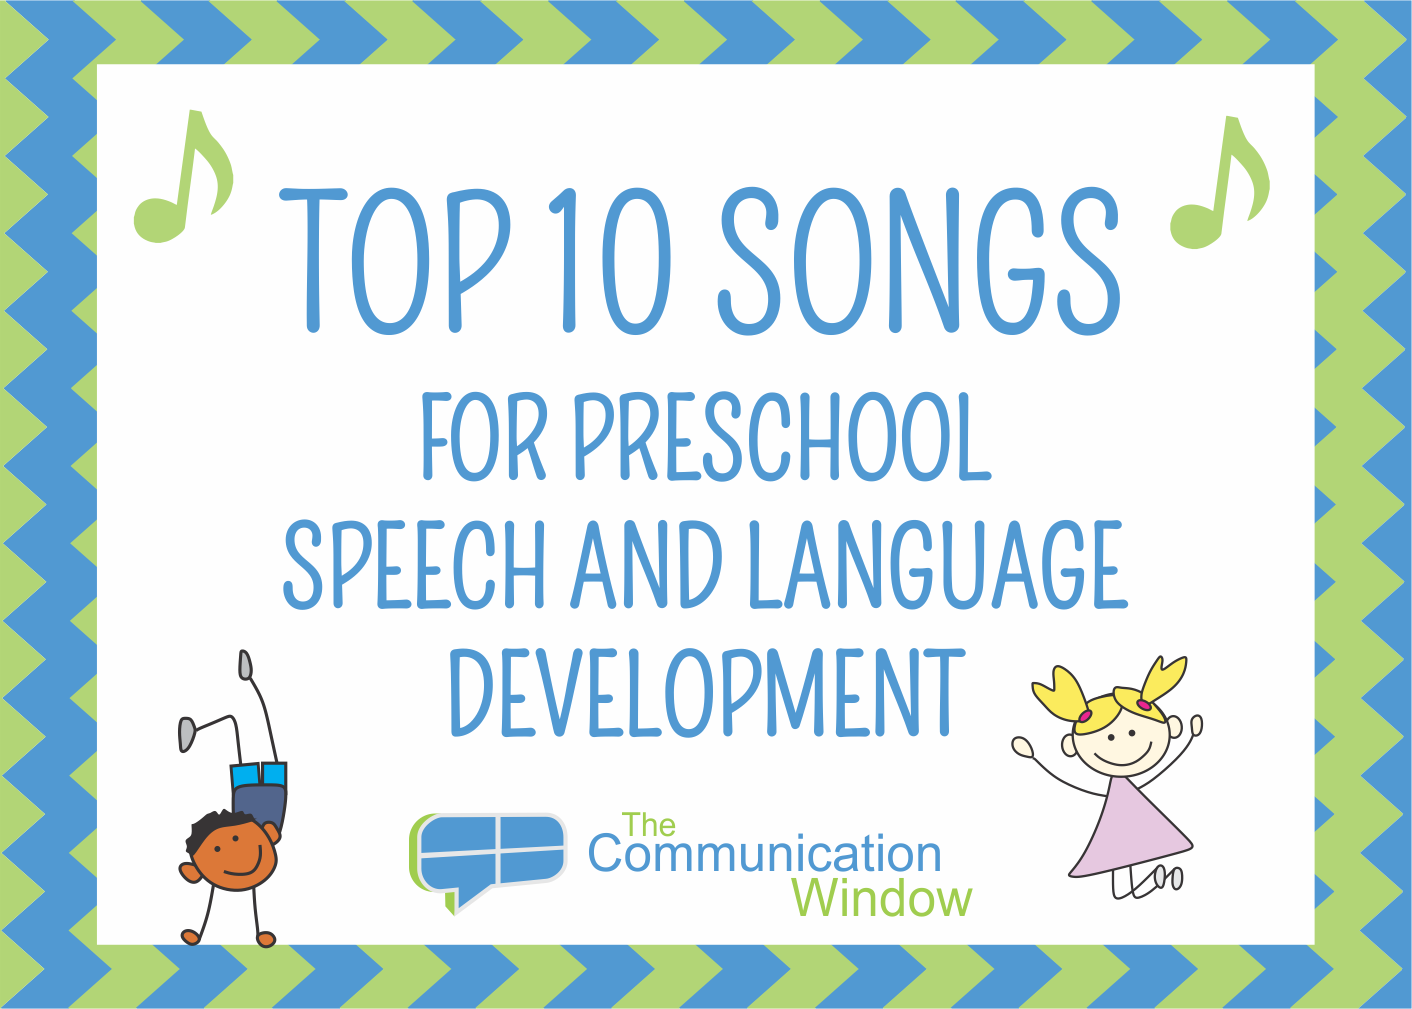 top 10 songs for preschool speech and language development